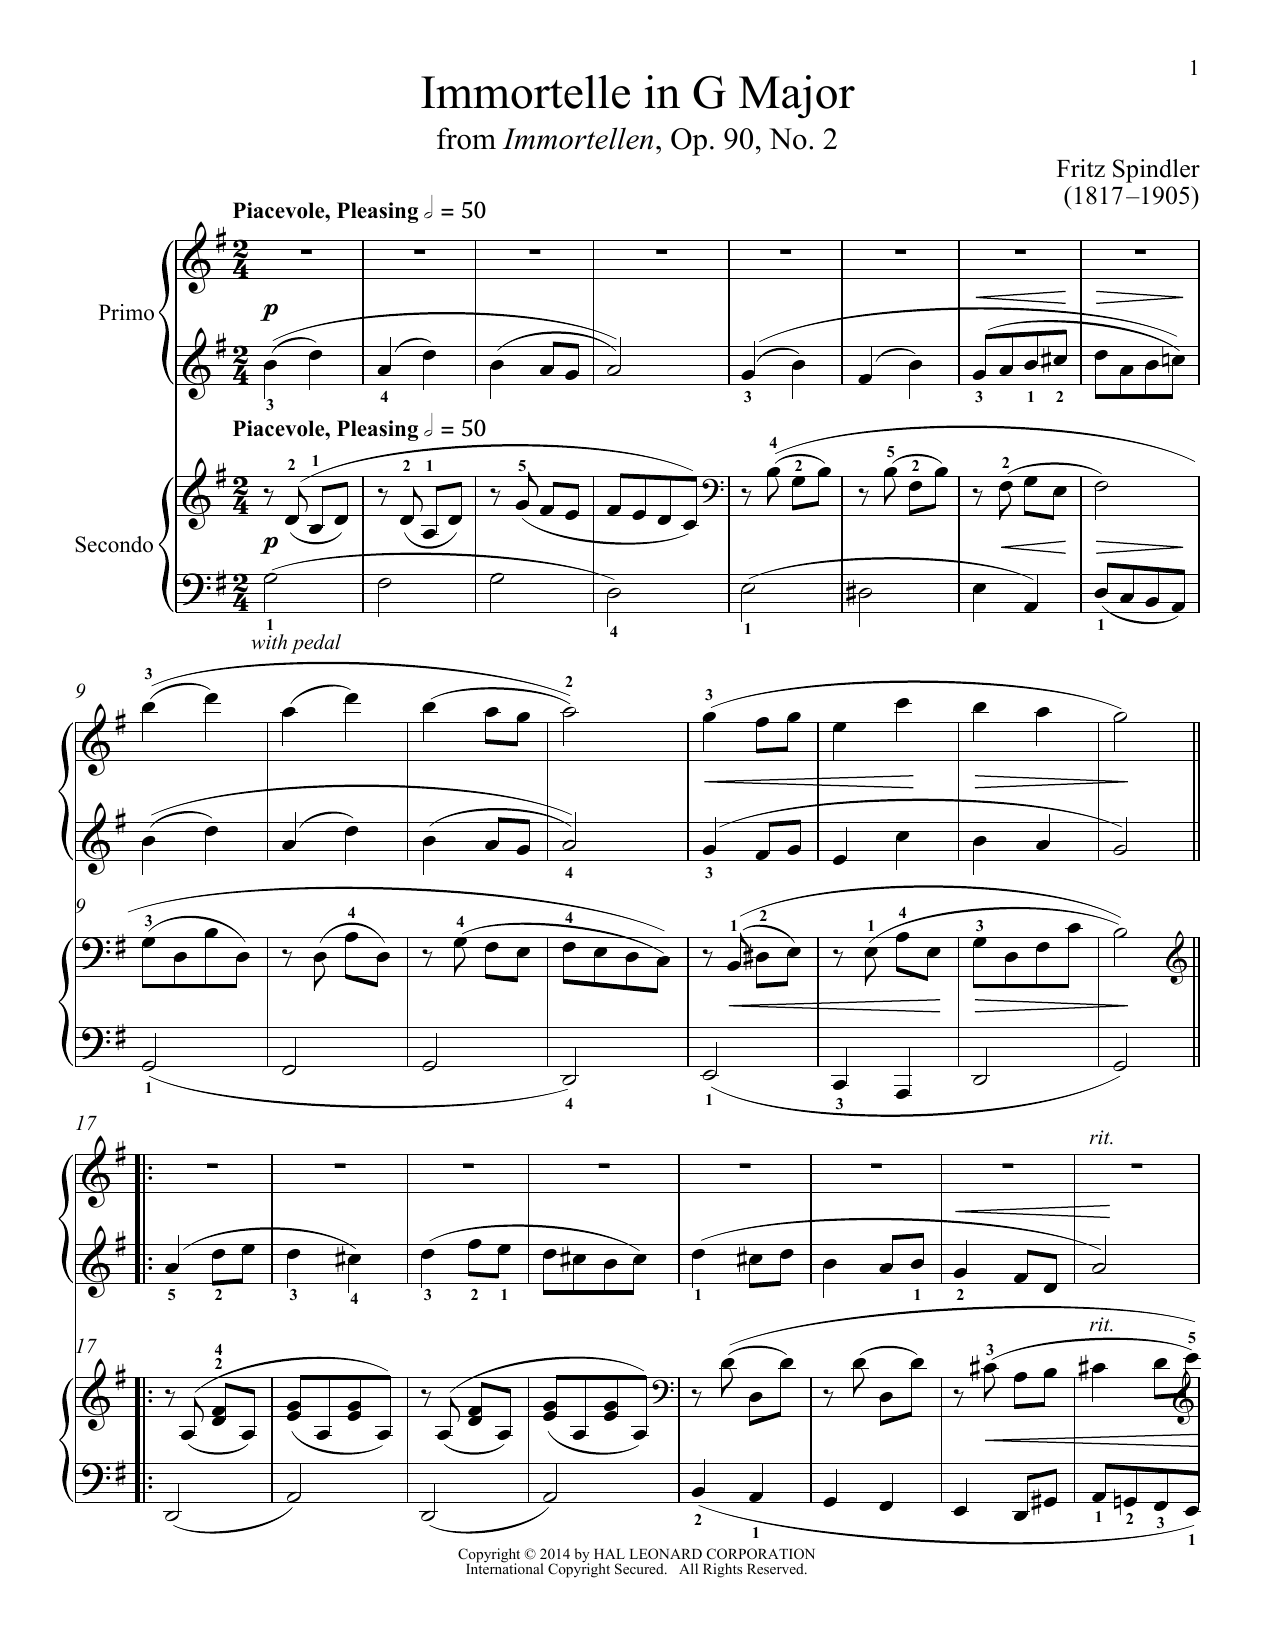 Bradley Beckman Immortelle In G Major sheet music notes and chords. Download Printable PDF.